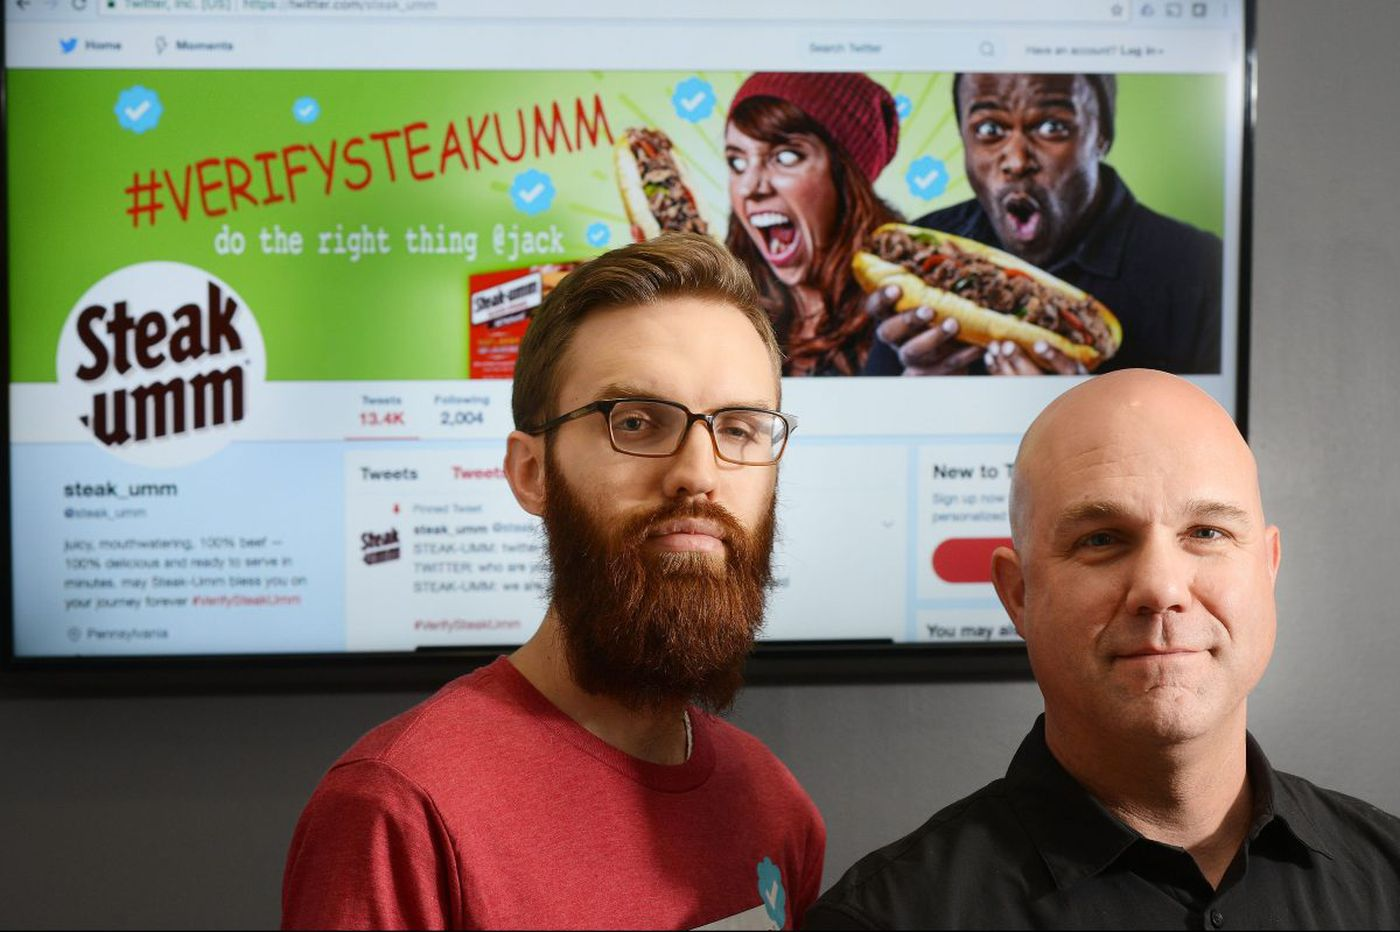 Steak-umm has a beef with Twitter